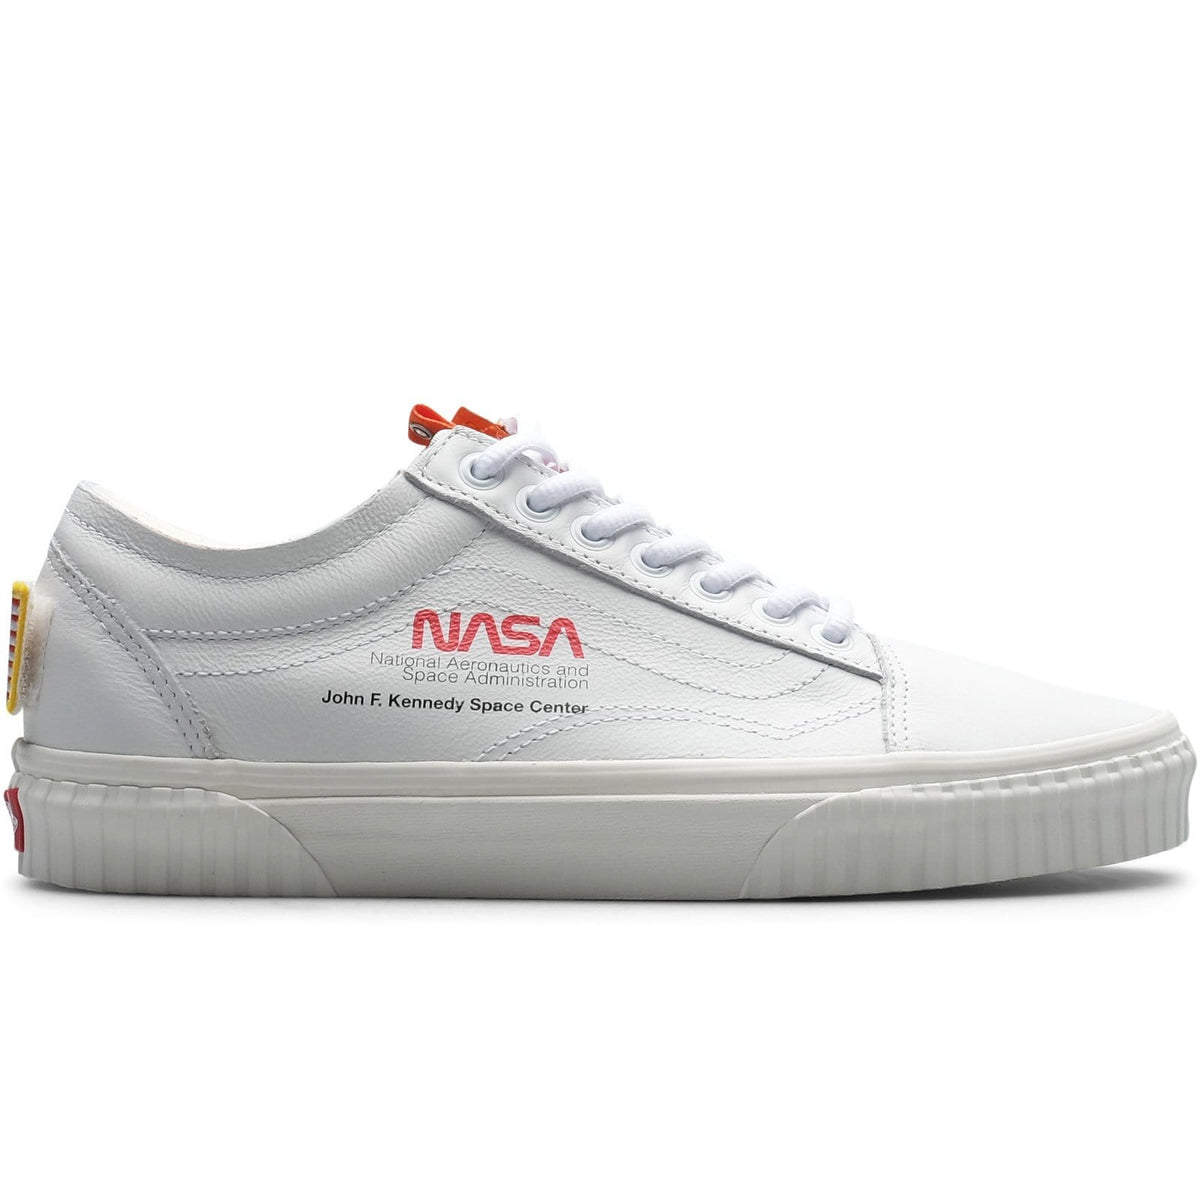 NASA OLD SKOOL True White – Bodega